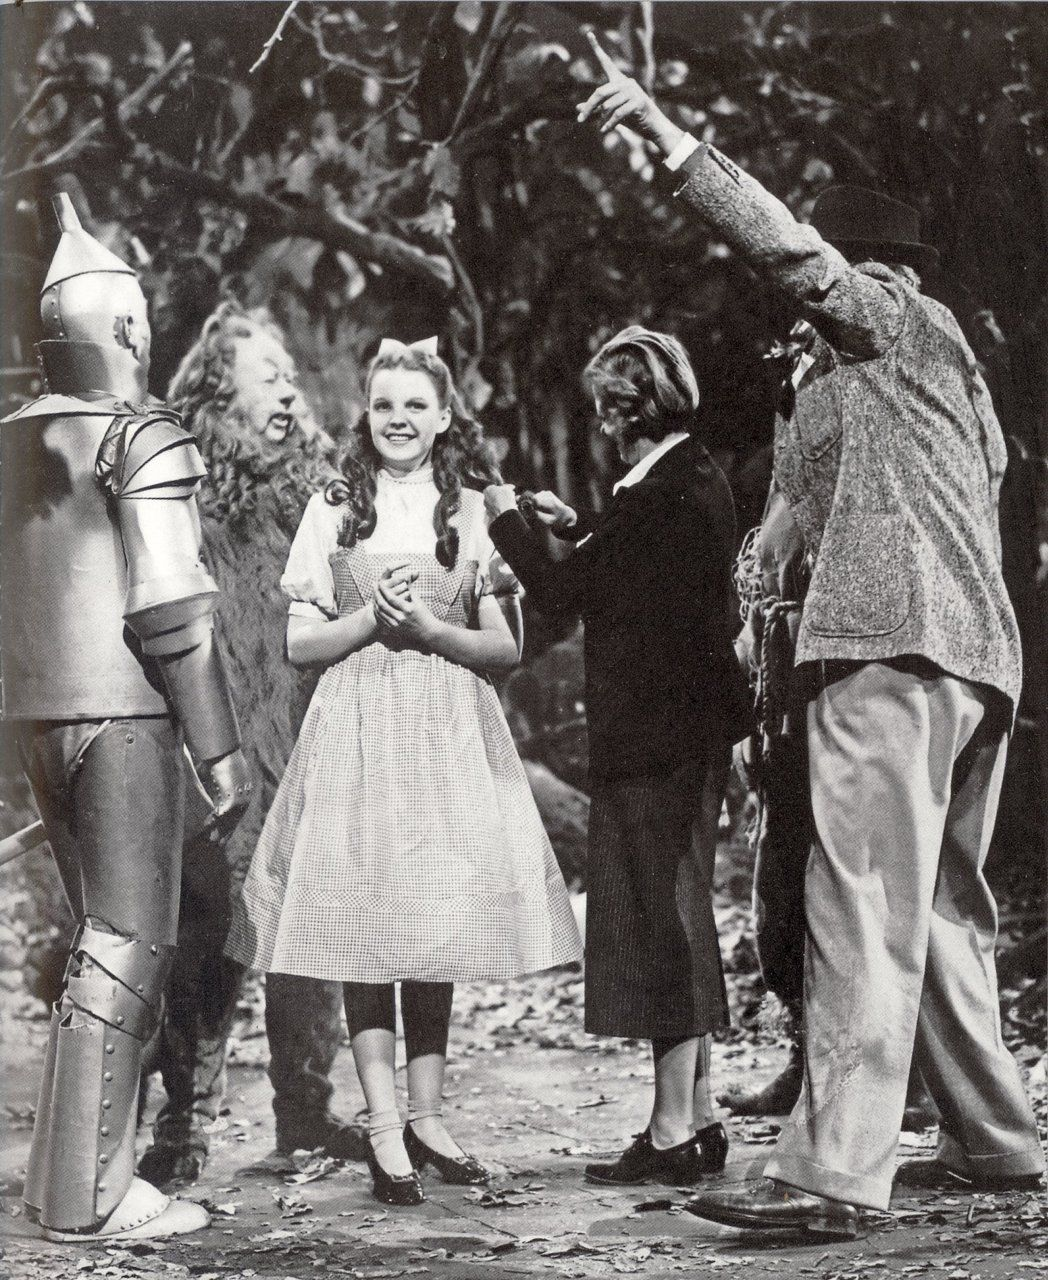 The Wizard Of Oz Audreyfan2 Some More Behind The Scenes Pics Wizard Of Oz Movie Wizard Of Oz Wizard Of Oz 1939